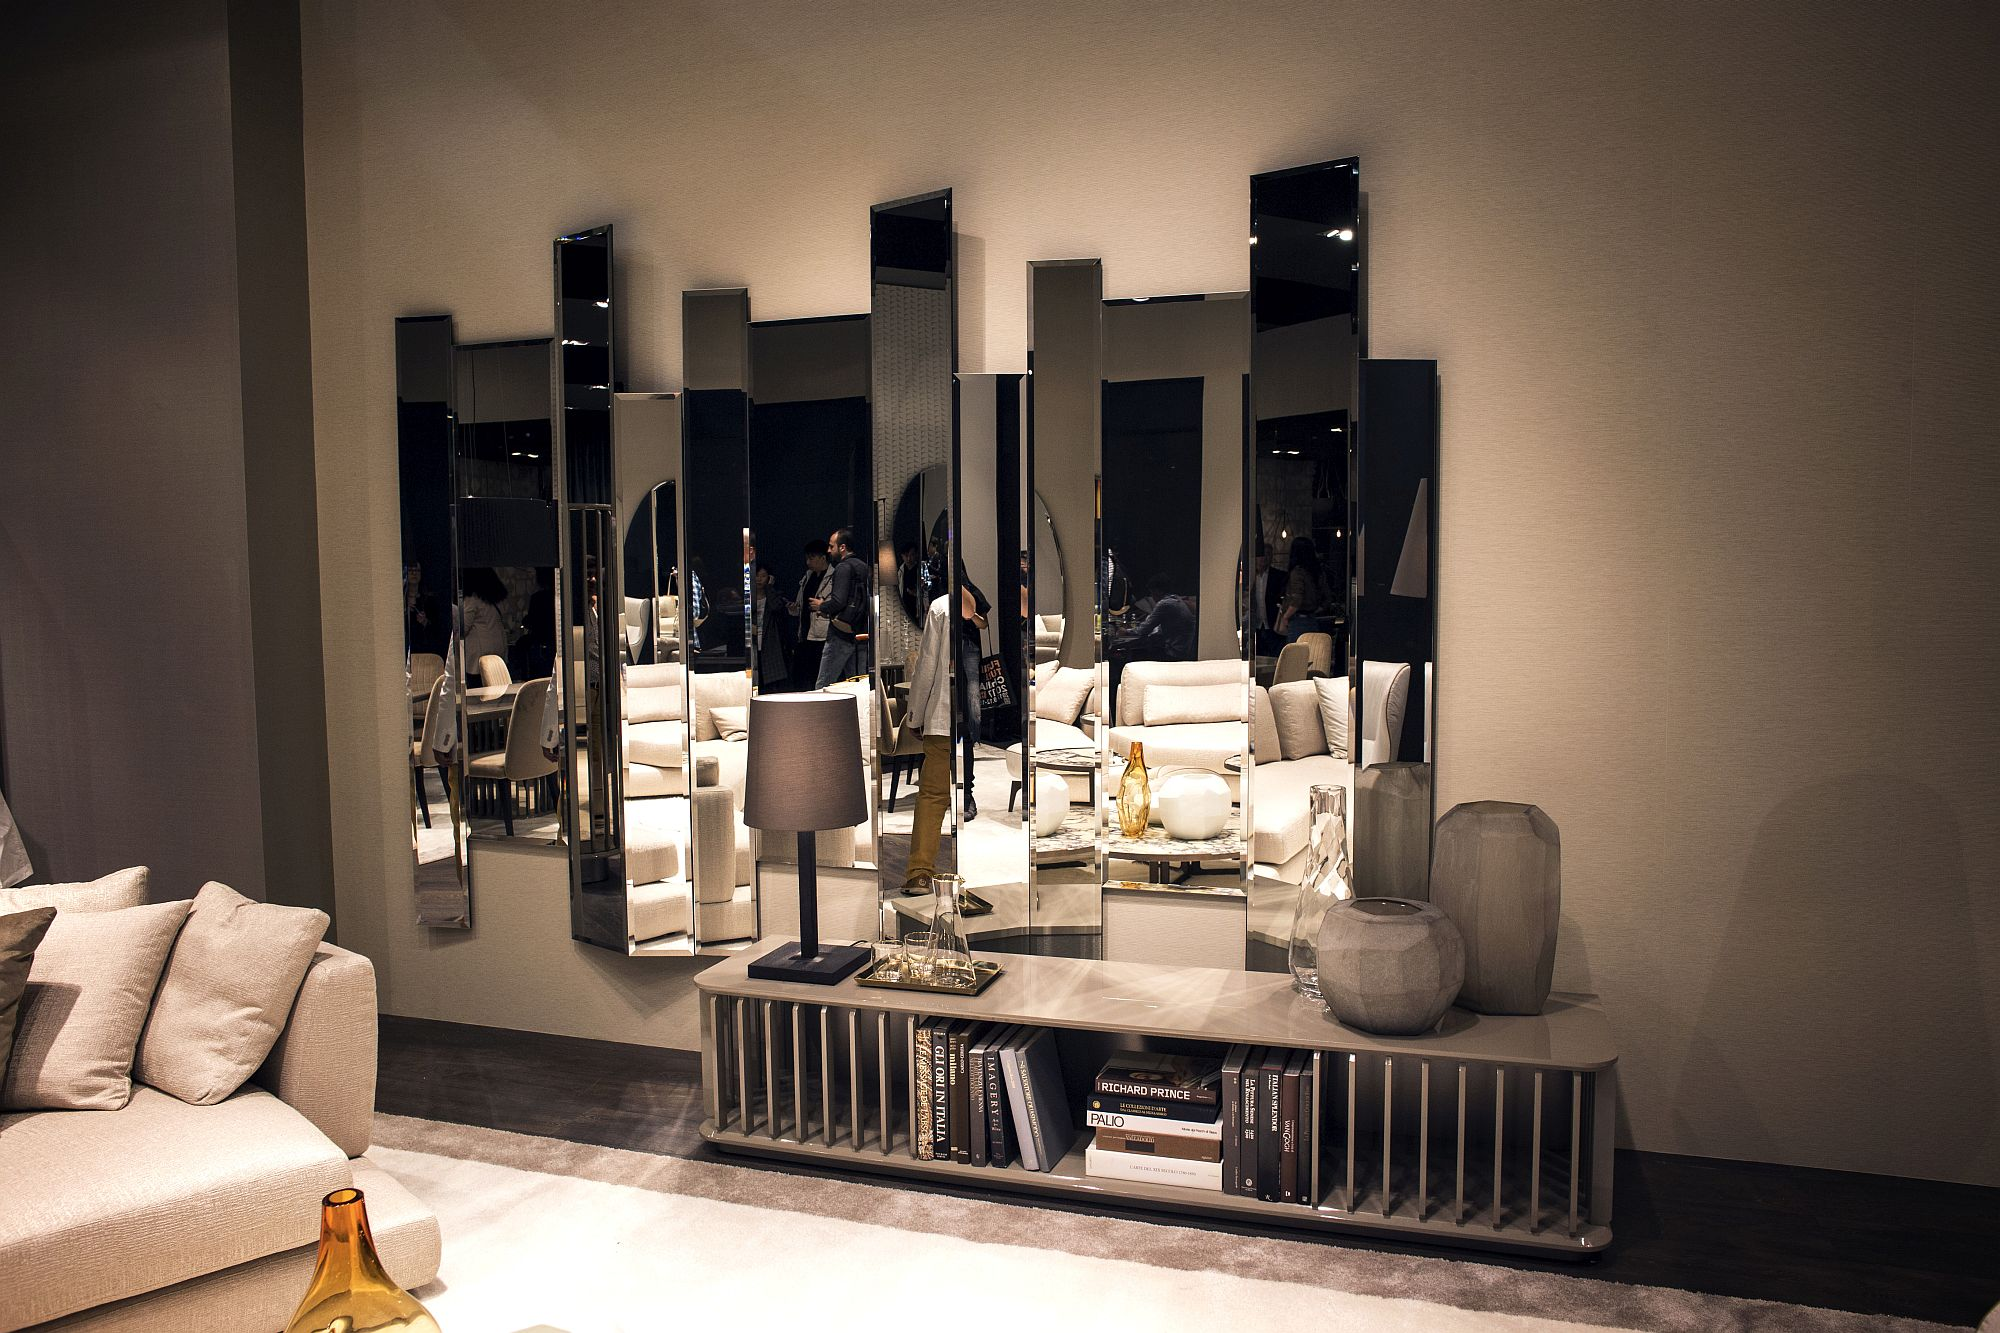 Modern and minimal mirror design creates a smart focal point in the living room